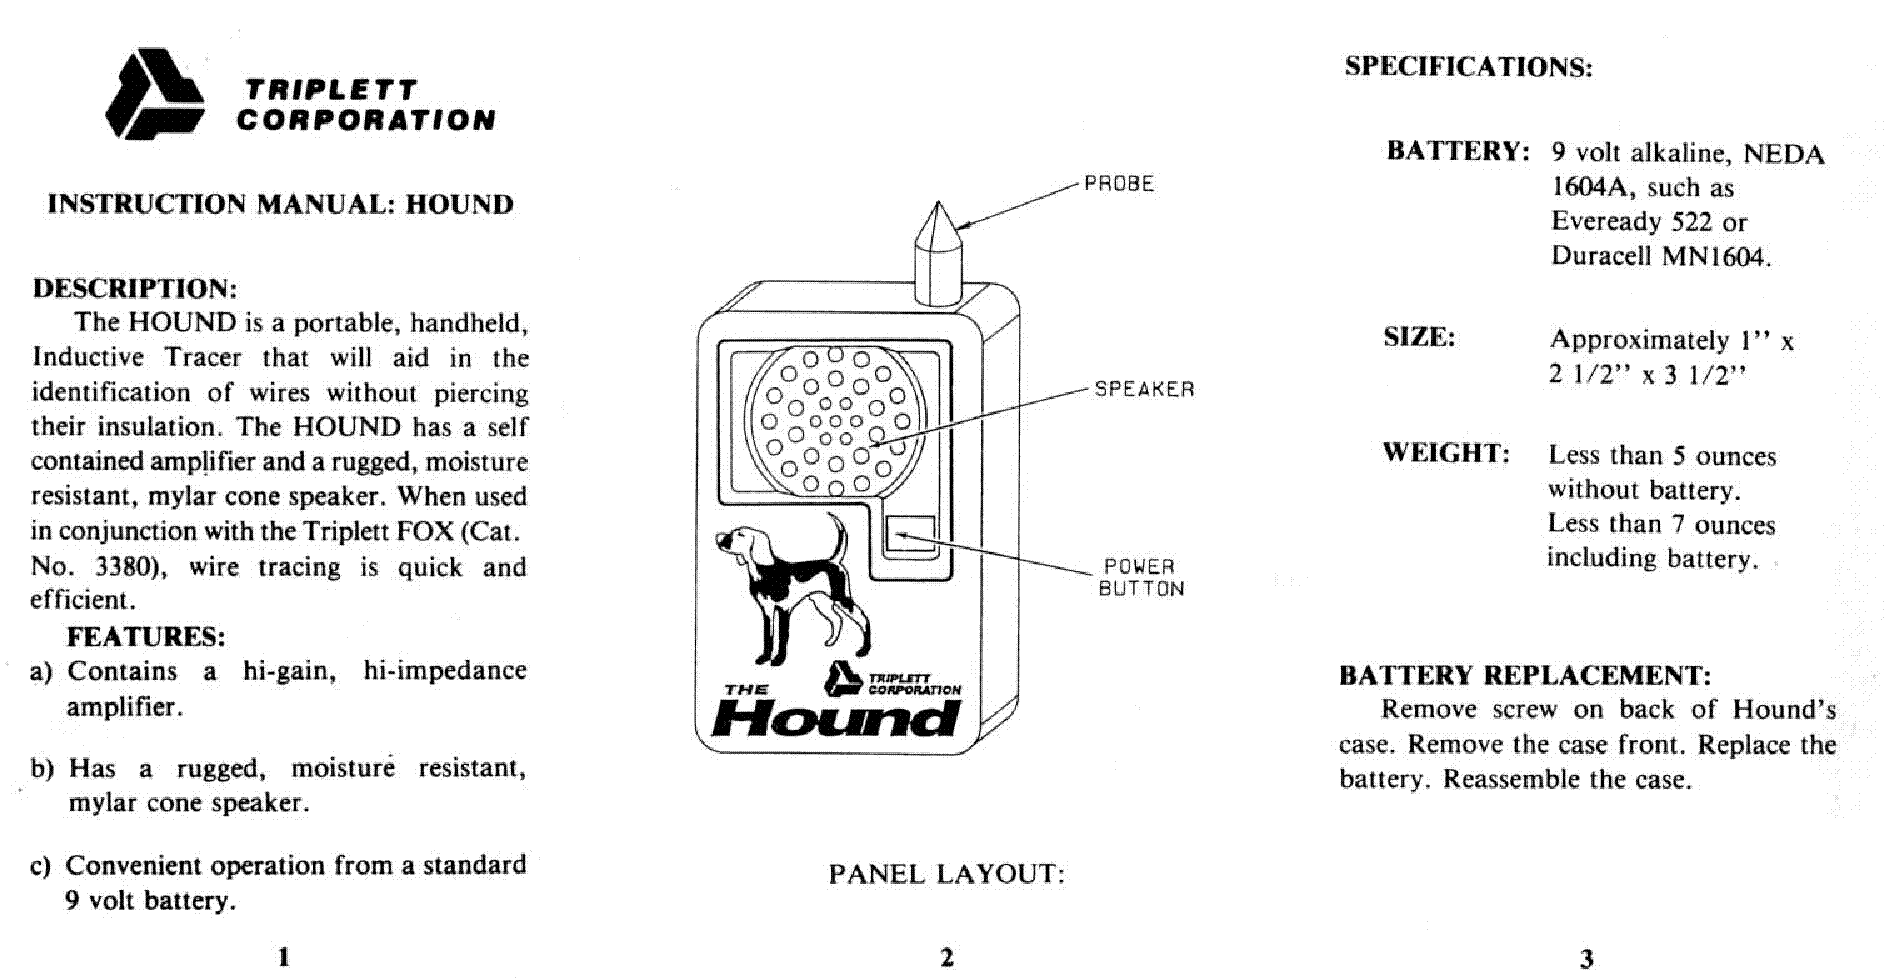 TRIPLETT TRIPLETT MODEL-HOUND HANDHELD INDUCTIVE TRACER service manual (1st  page)